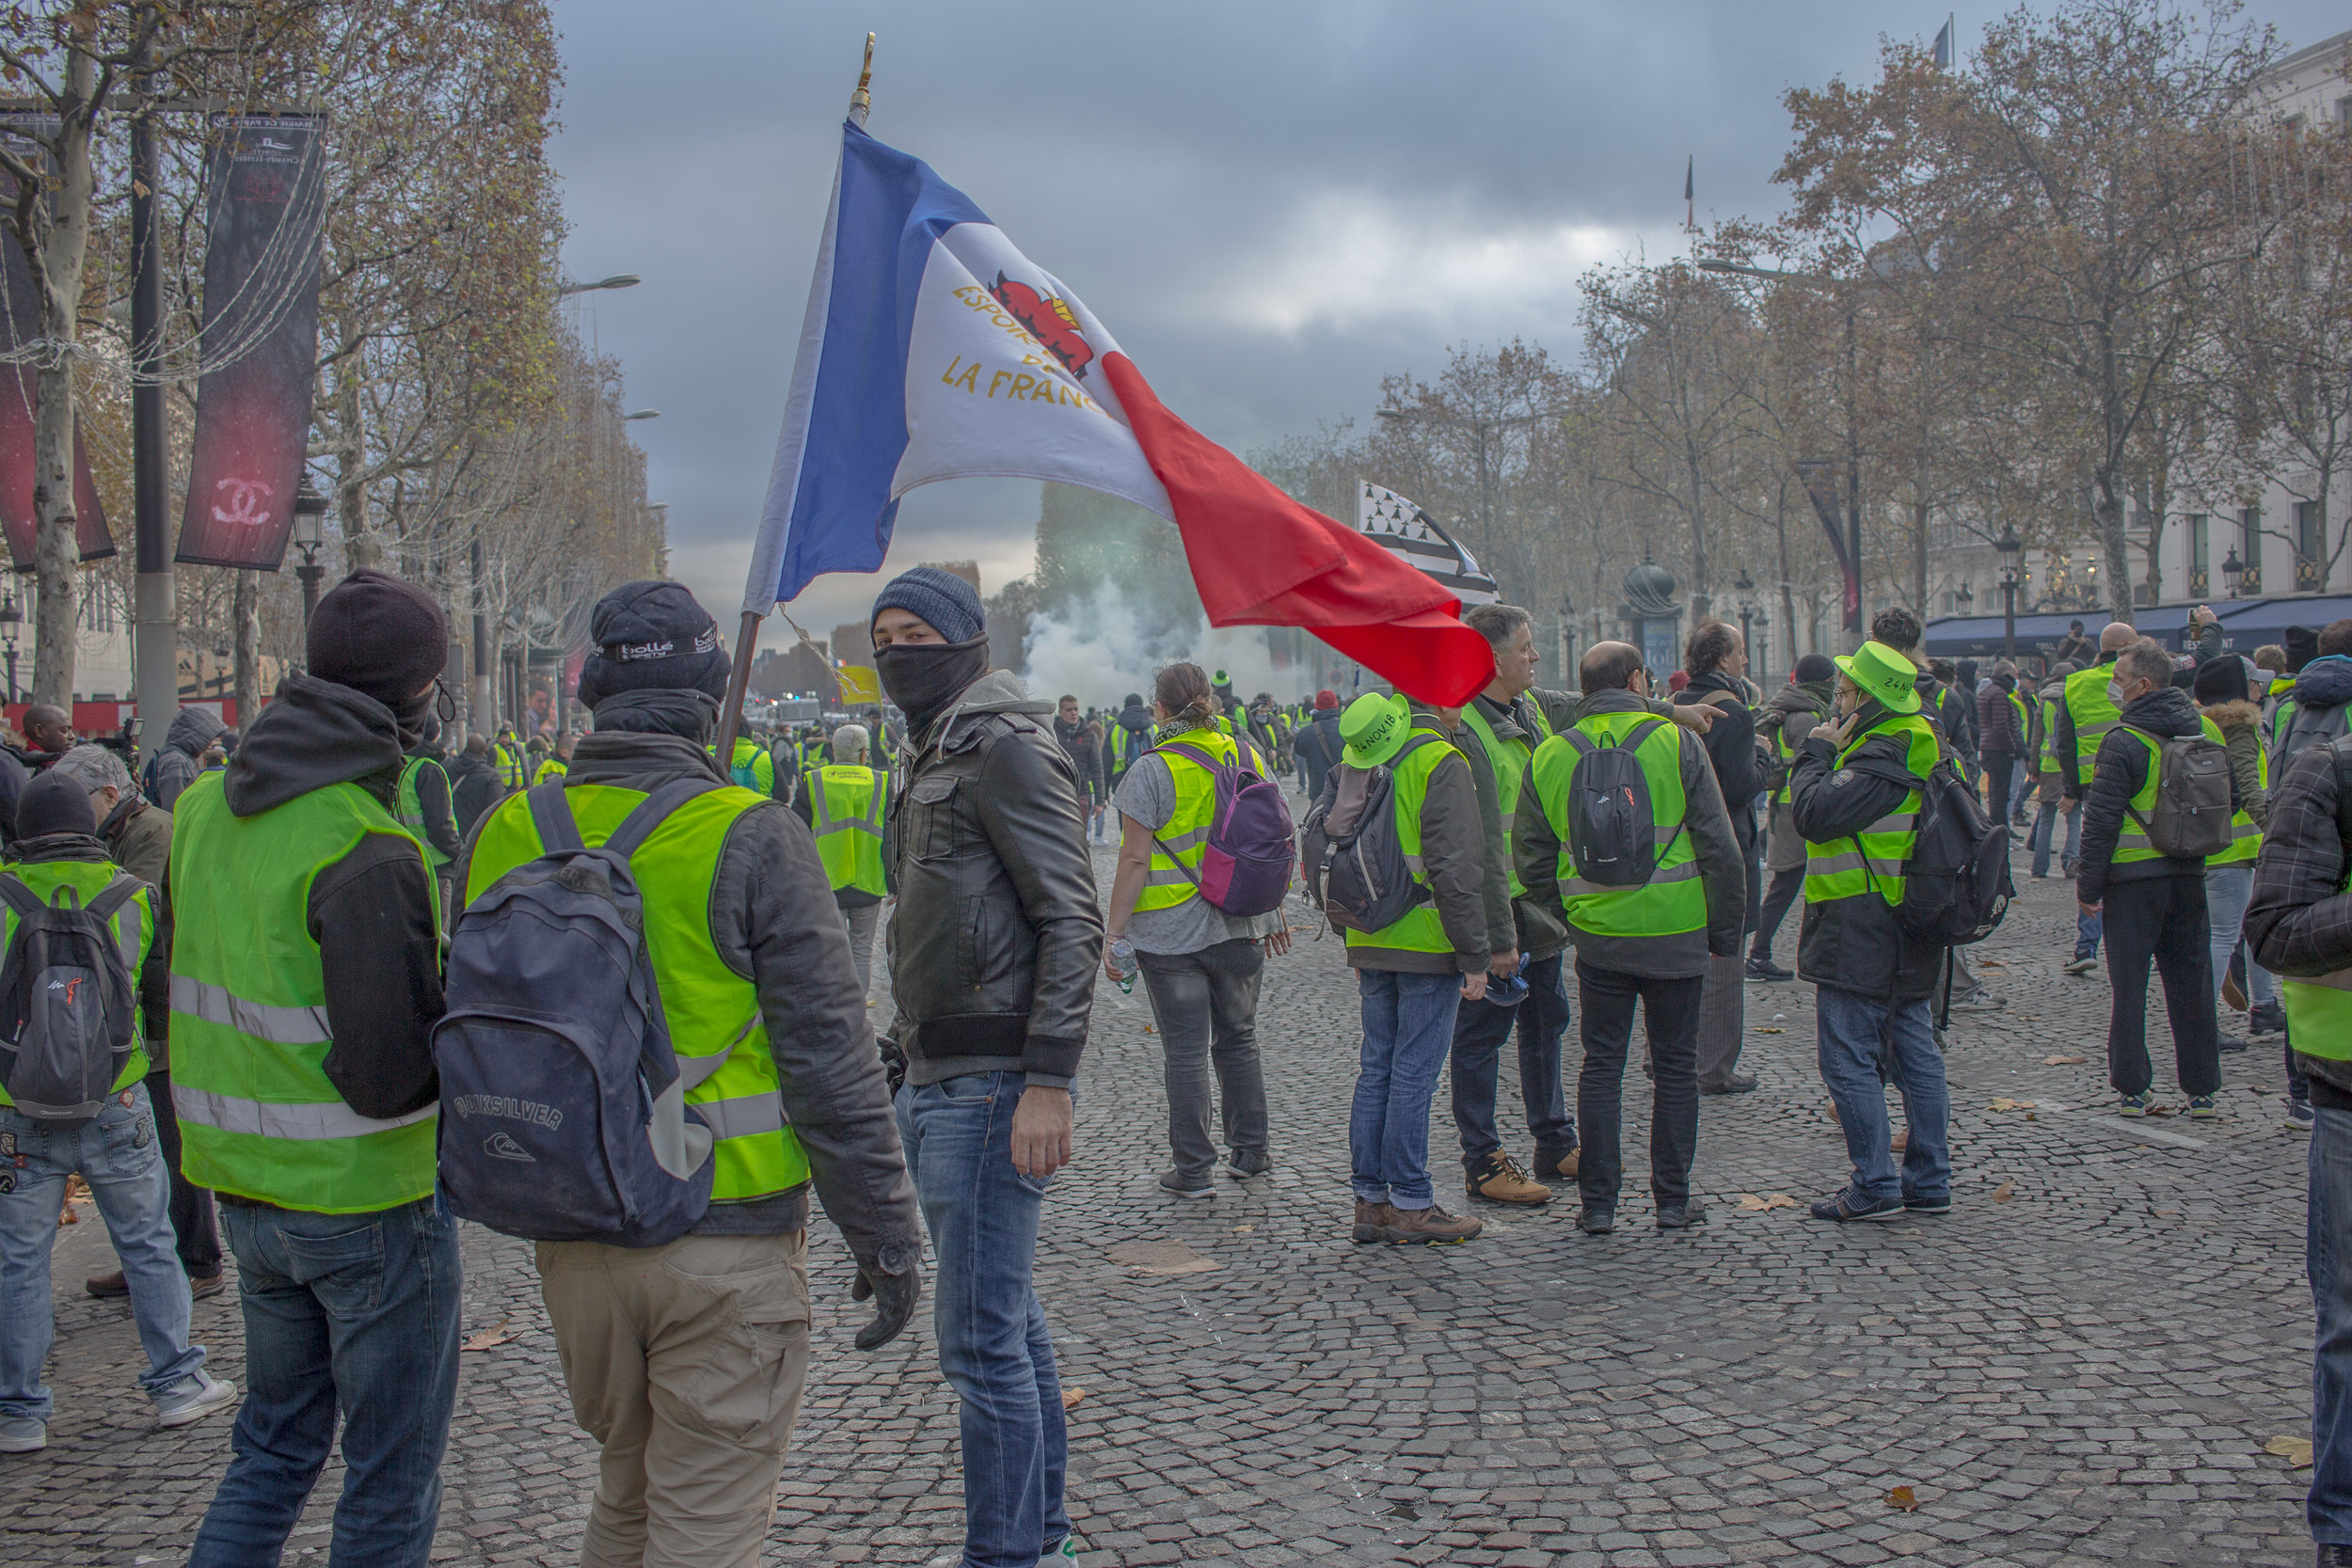 The Yellow Vests riot in the streets of Paris on December 1. (flickr)